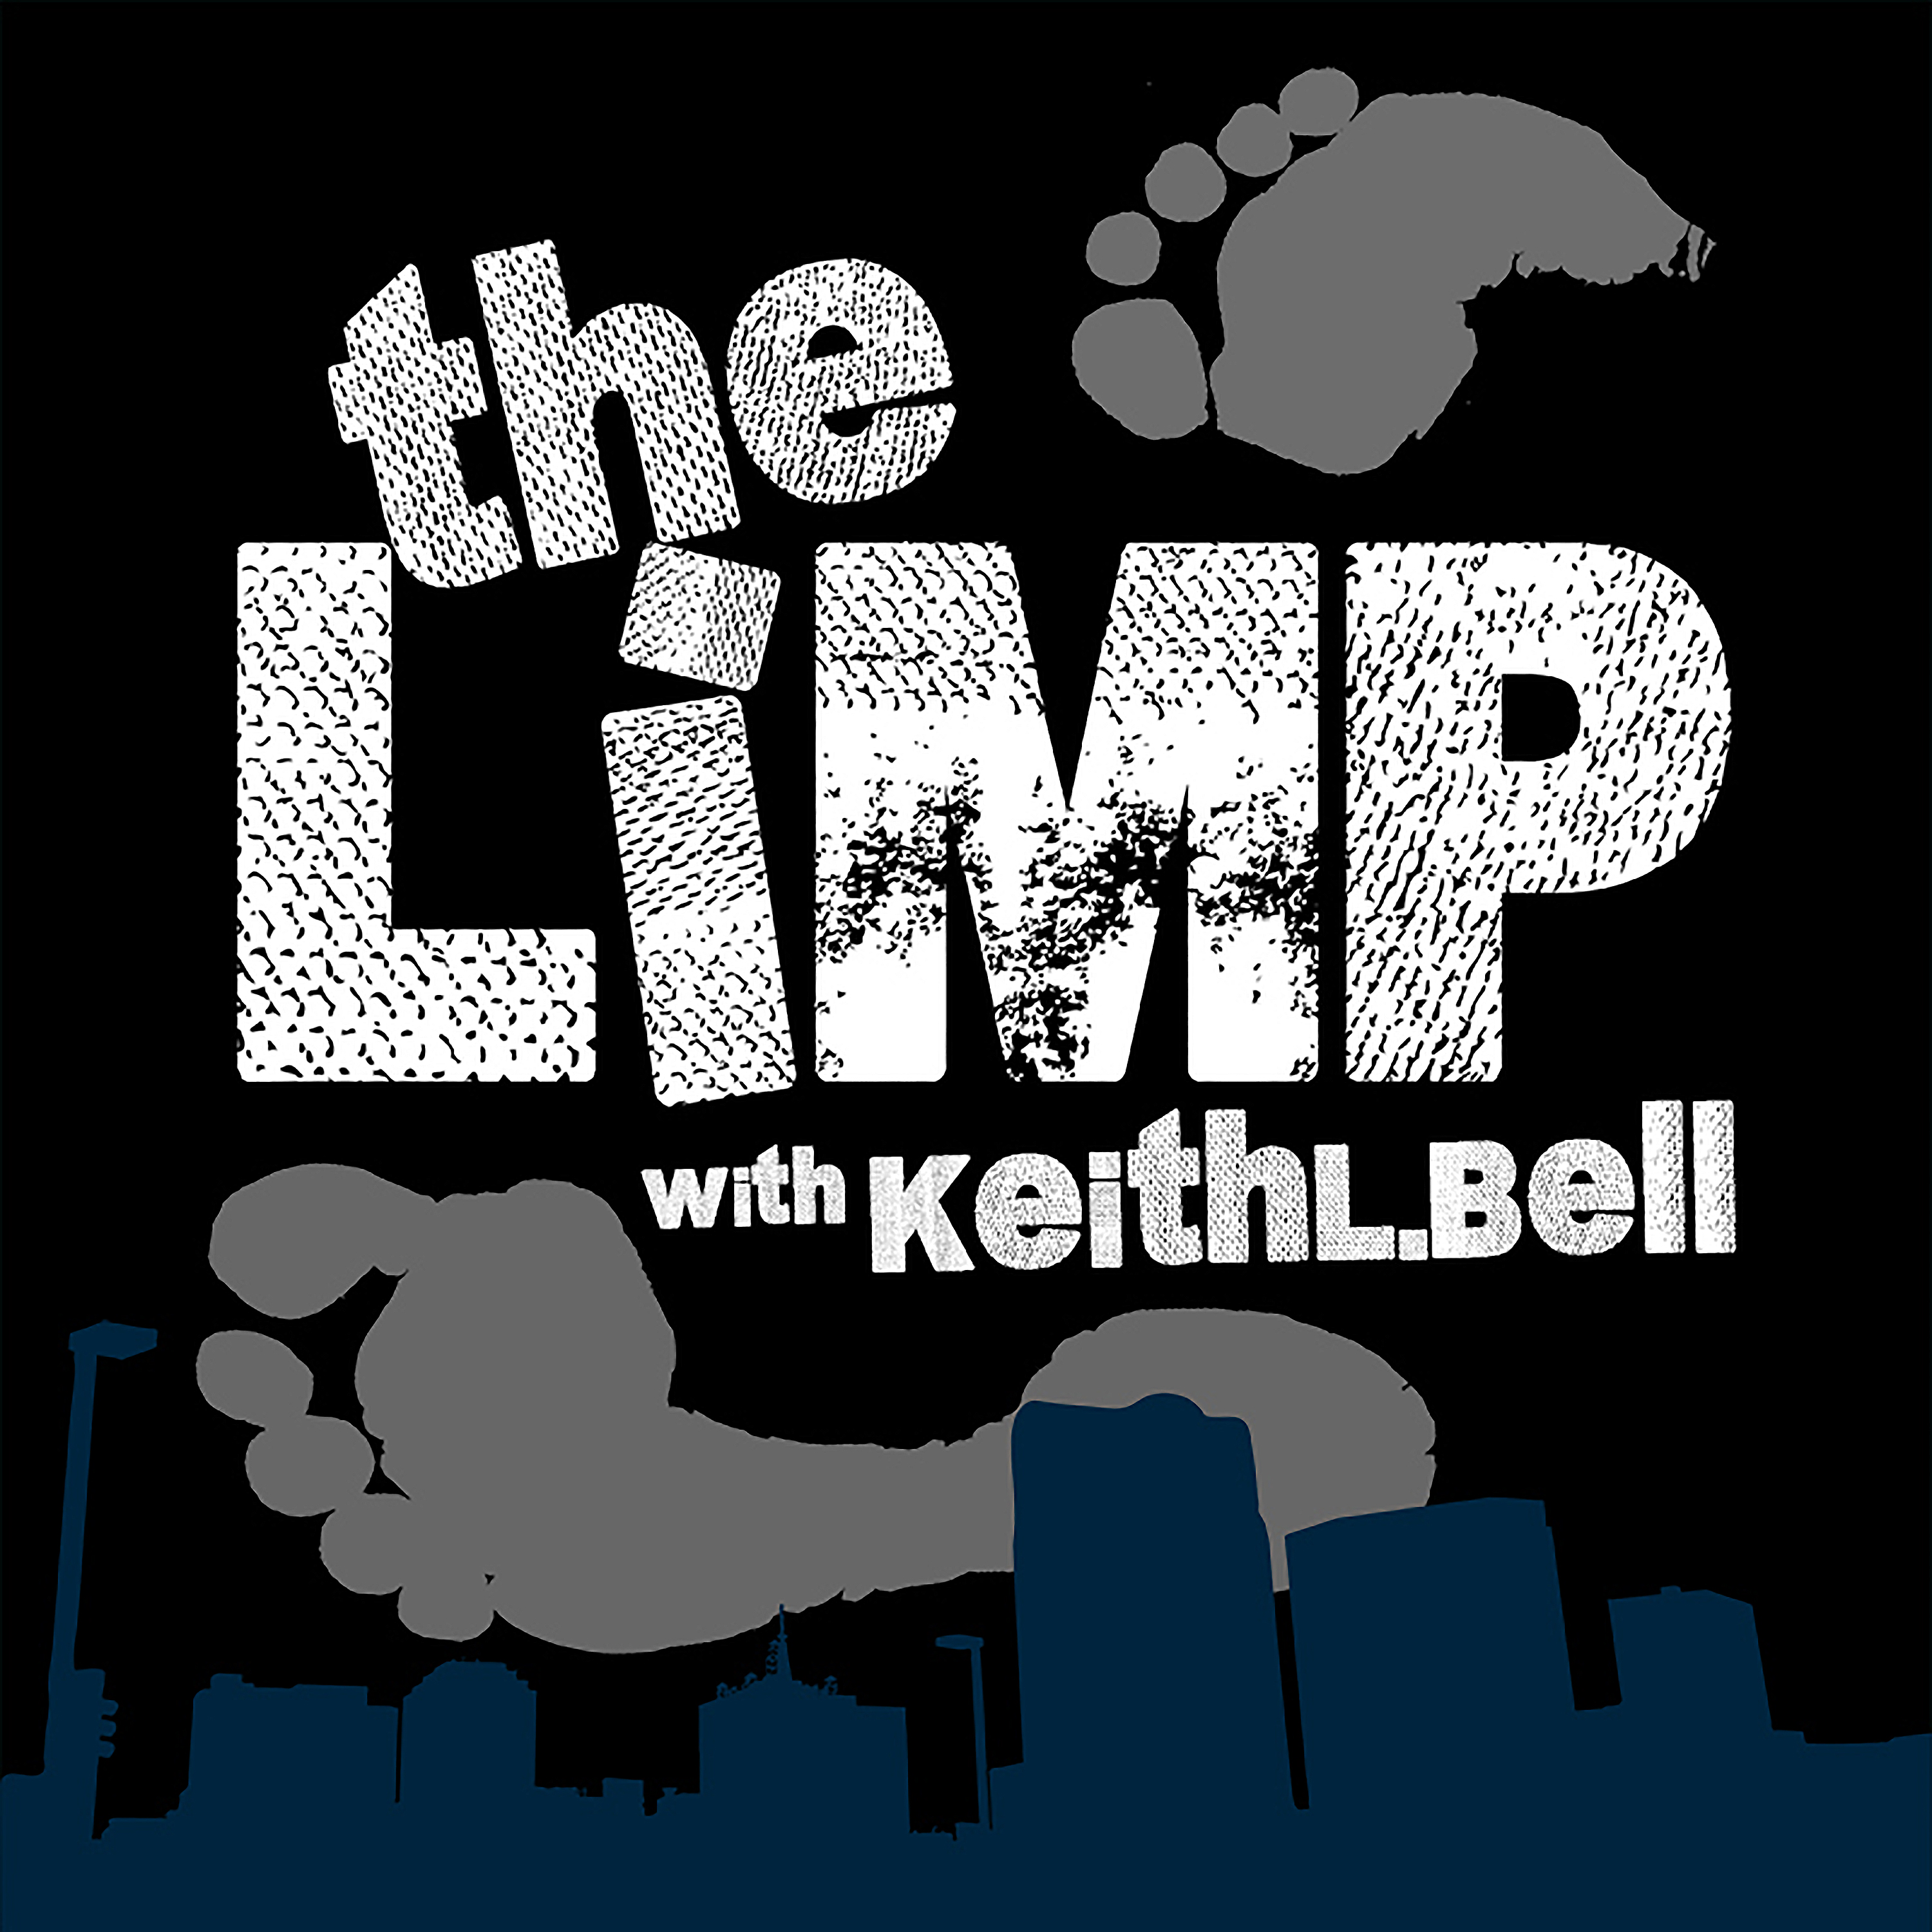 The LiMP